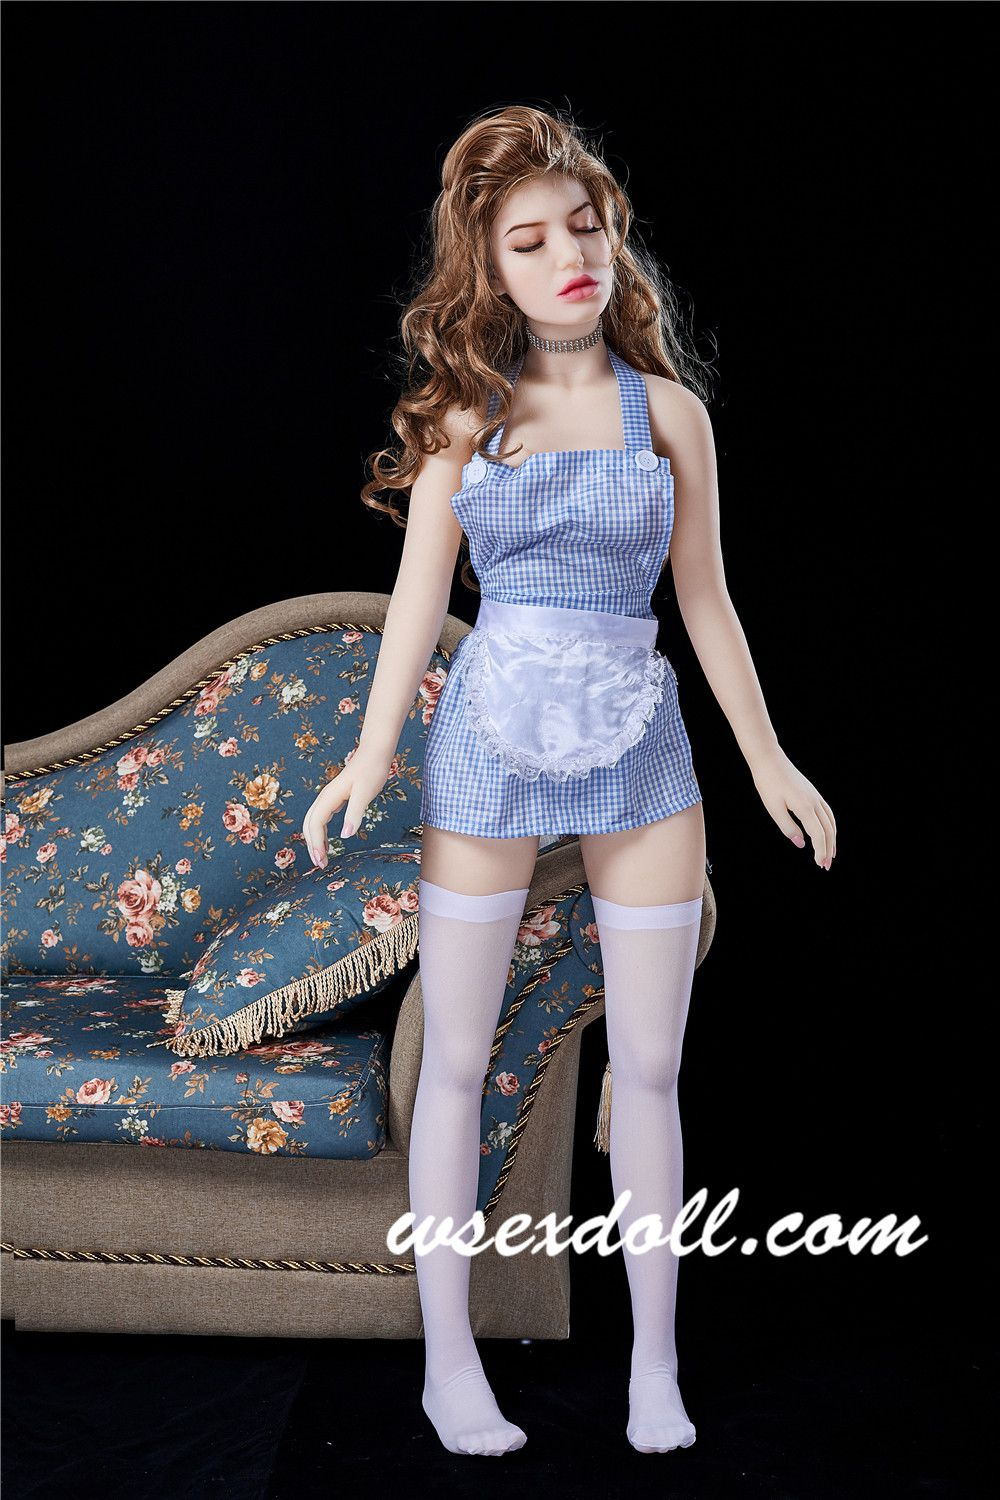 145cm Full Body Realistic Custom Sex Doll With Brown Curly Hair